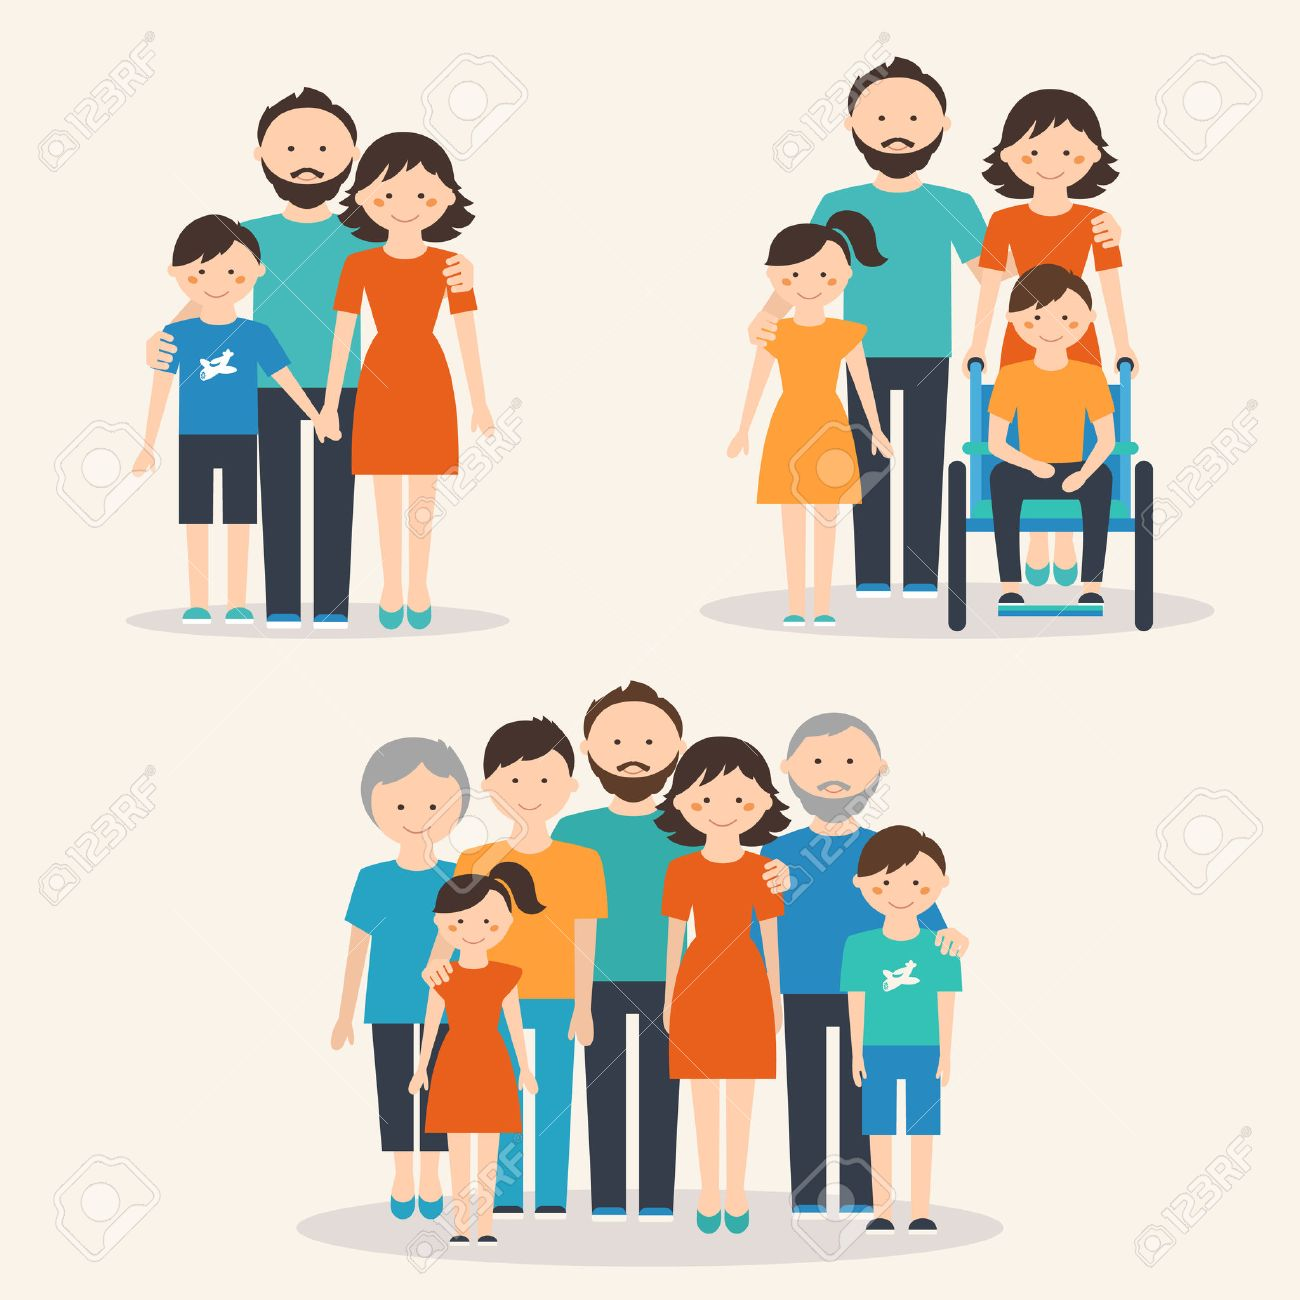 Nuclear Family, Family with Special Needs Child and Extended Family. Families of Different Types Stock Vector - 42658986